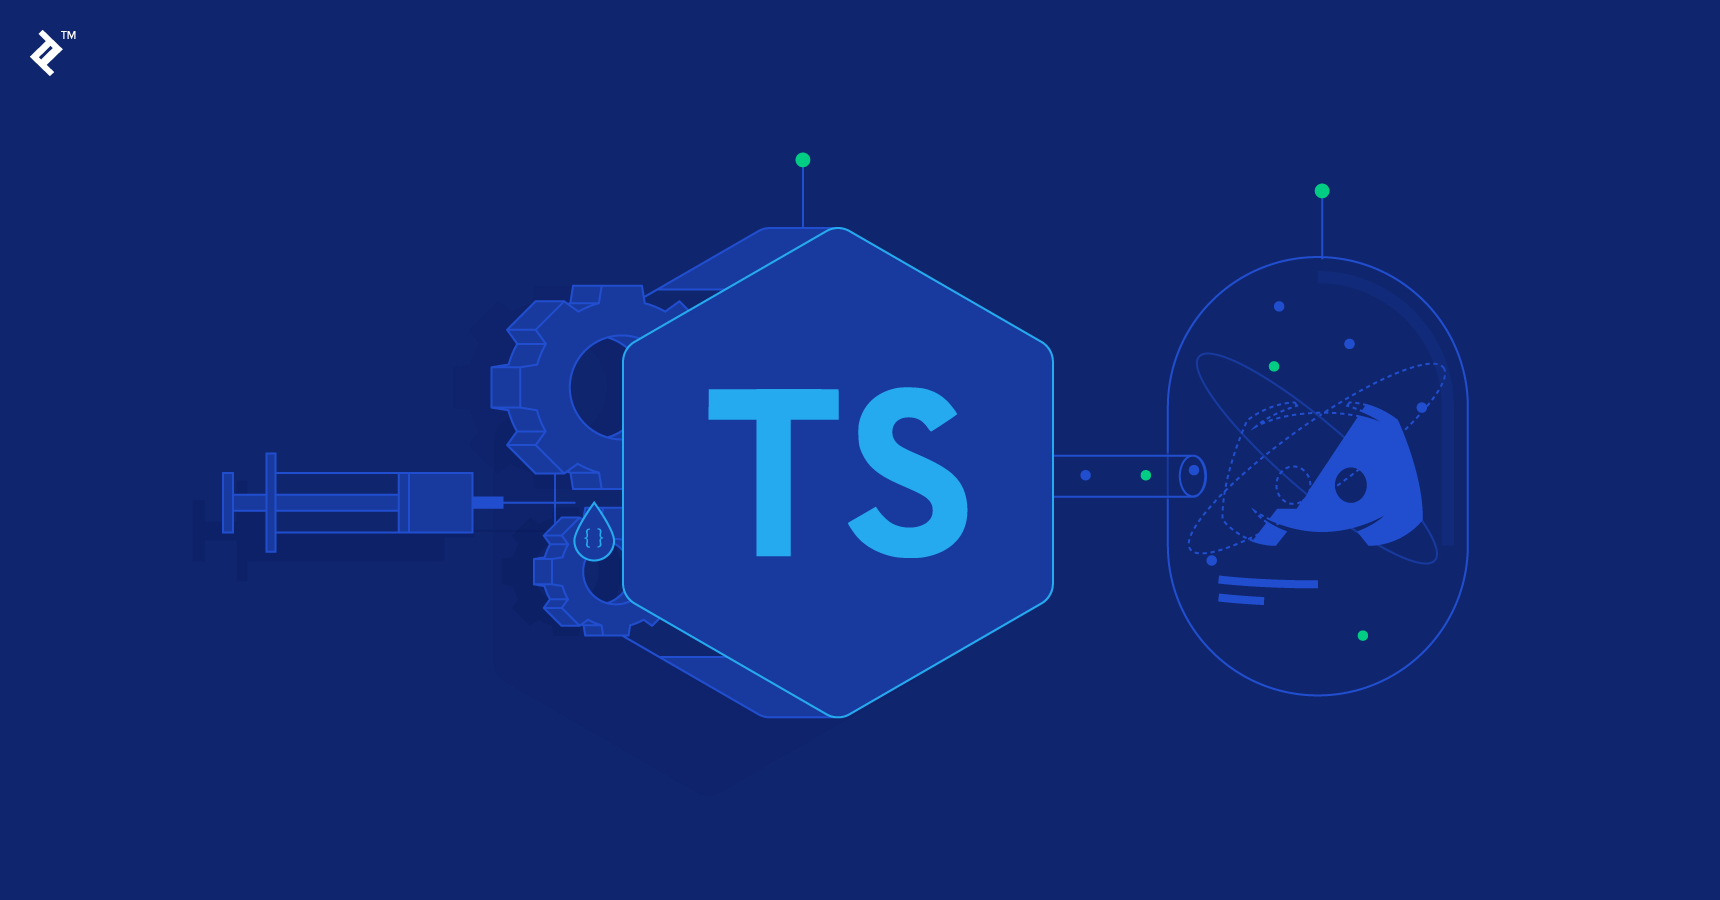 Better JavaScript? Use TypeScript and Dependency Injection